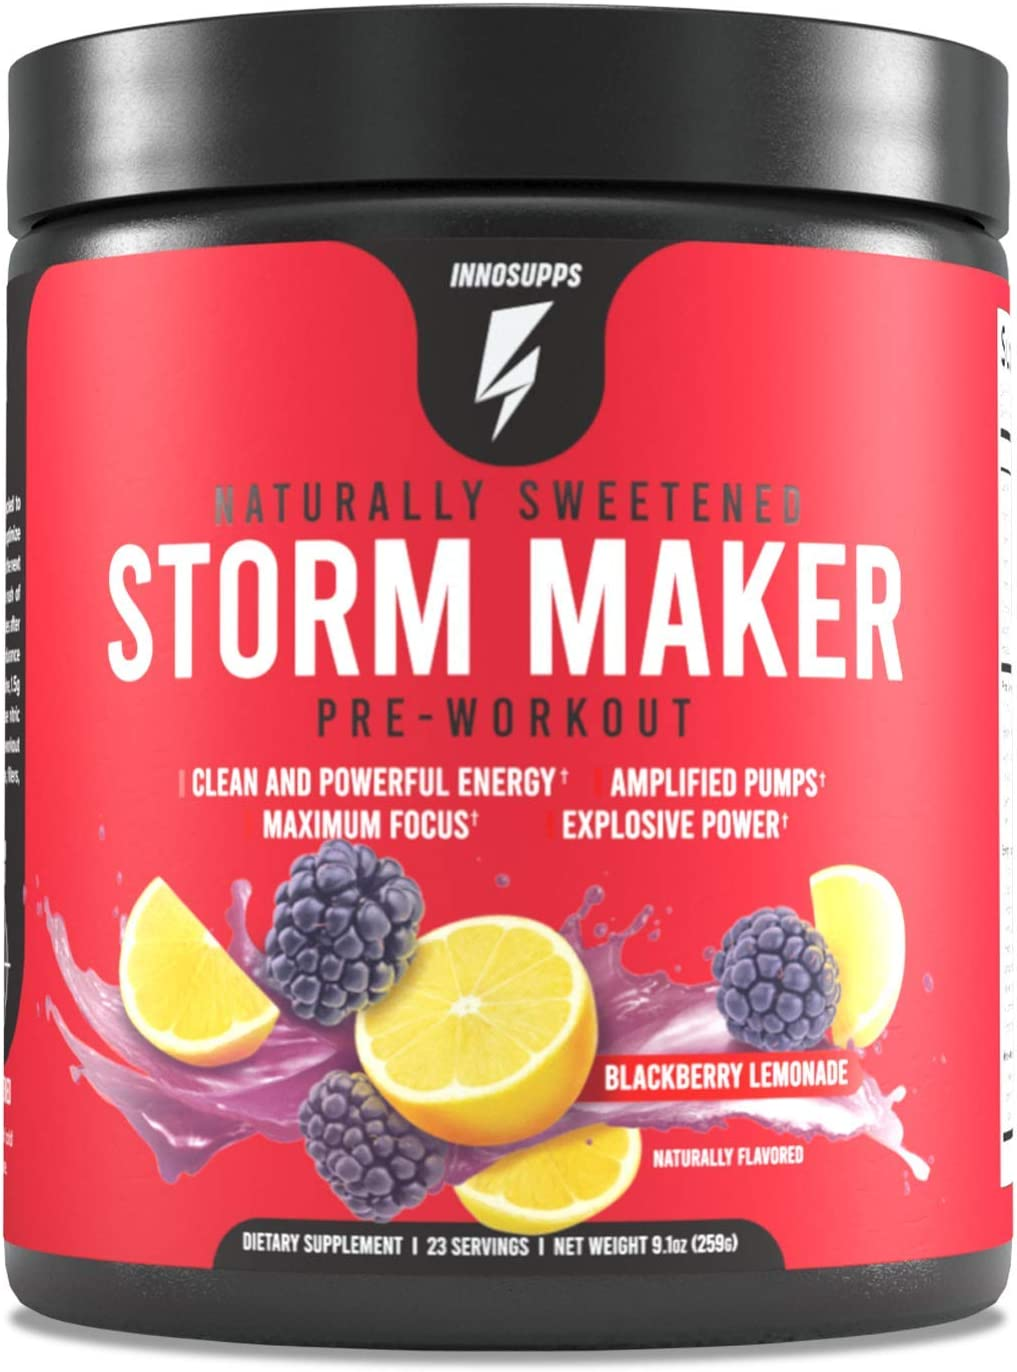 Inno Supps Storm Maker Pre Workout Lasting Organi 期間限定 本物◆ - Long Energy